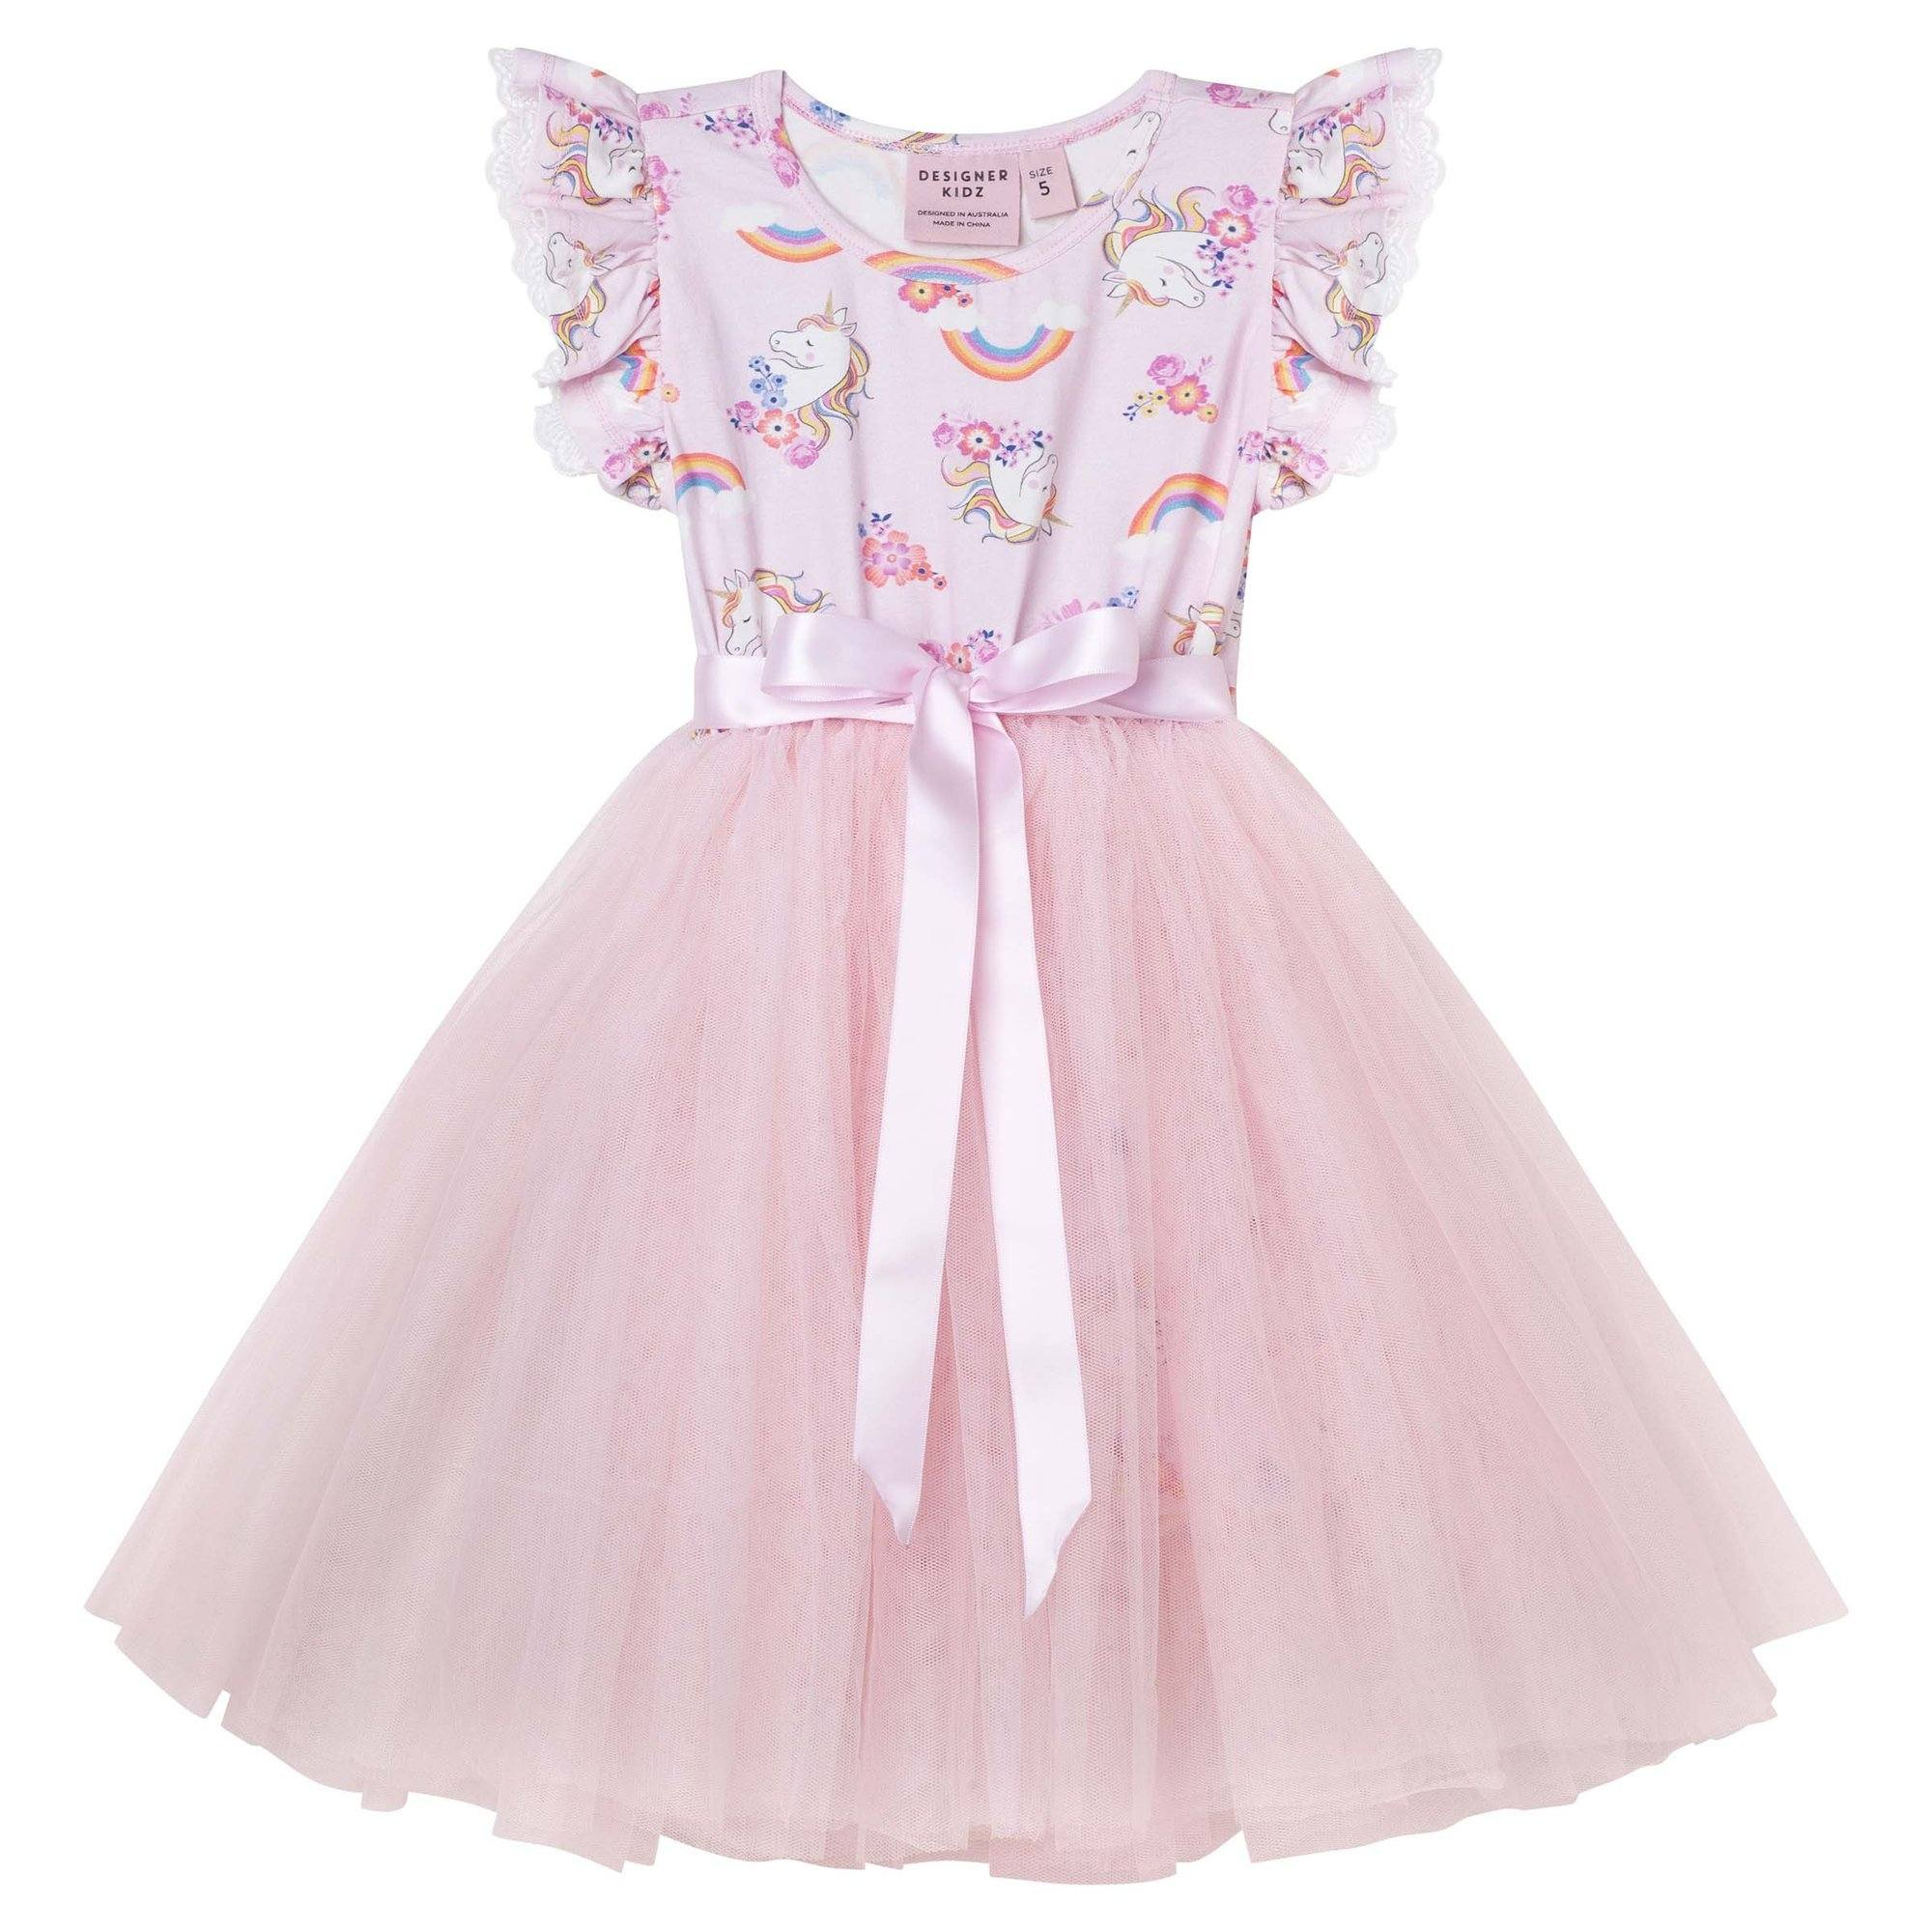 Enchanted Unicorn SS Tutu Dress